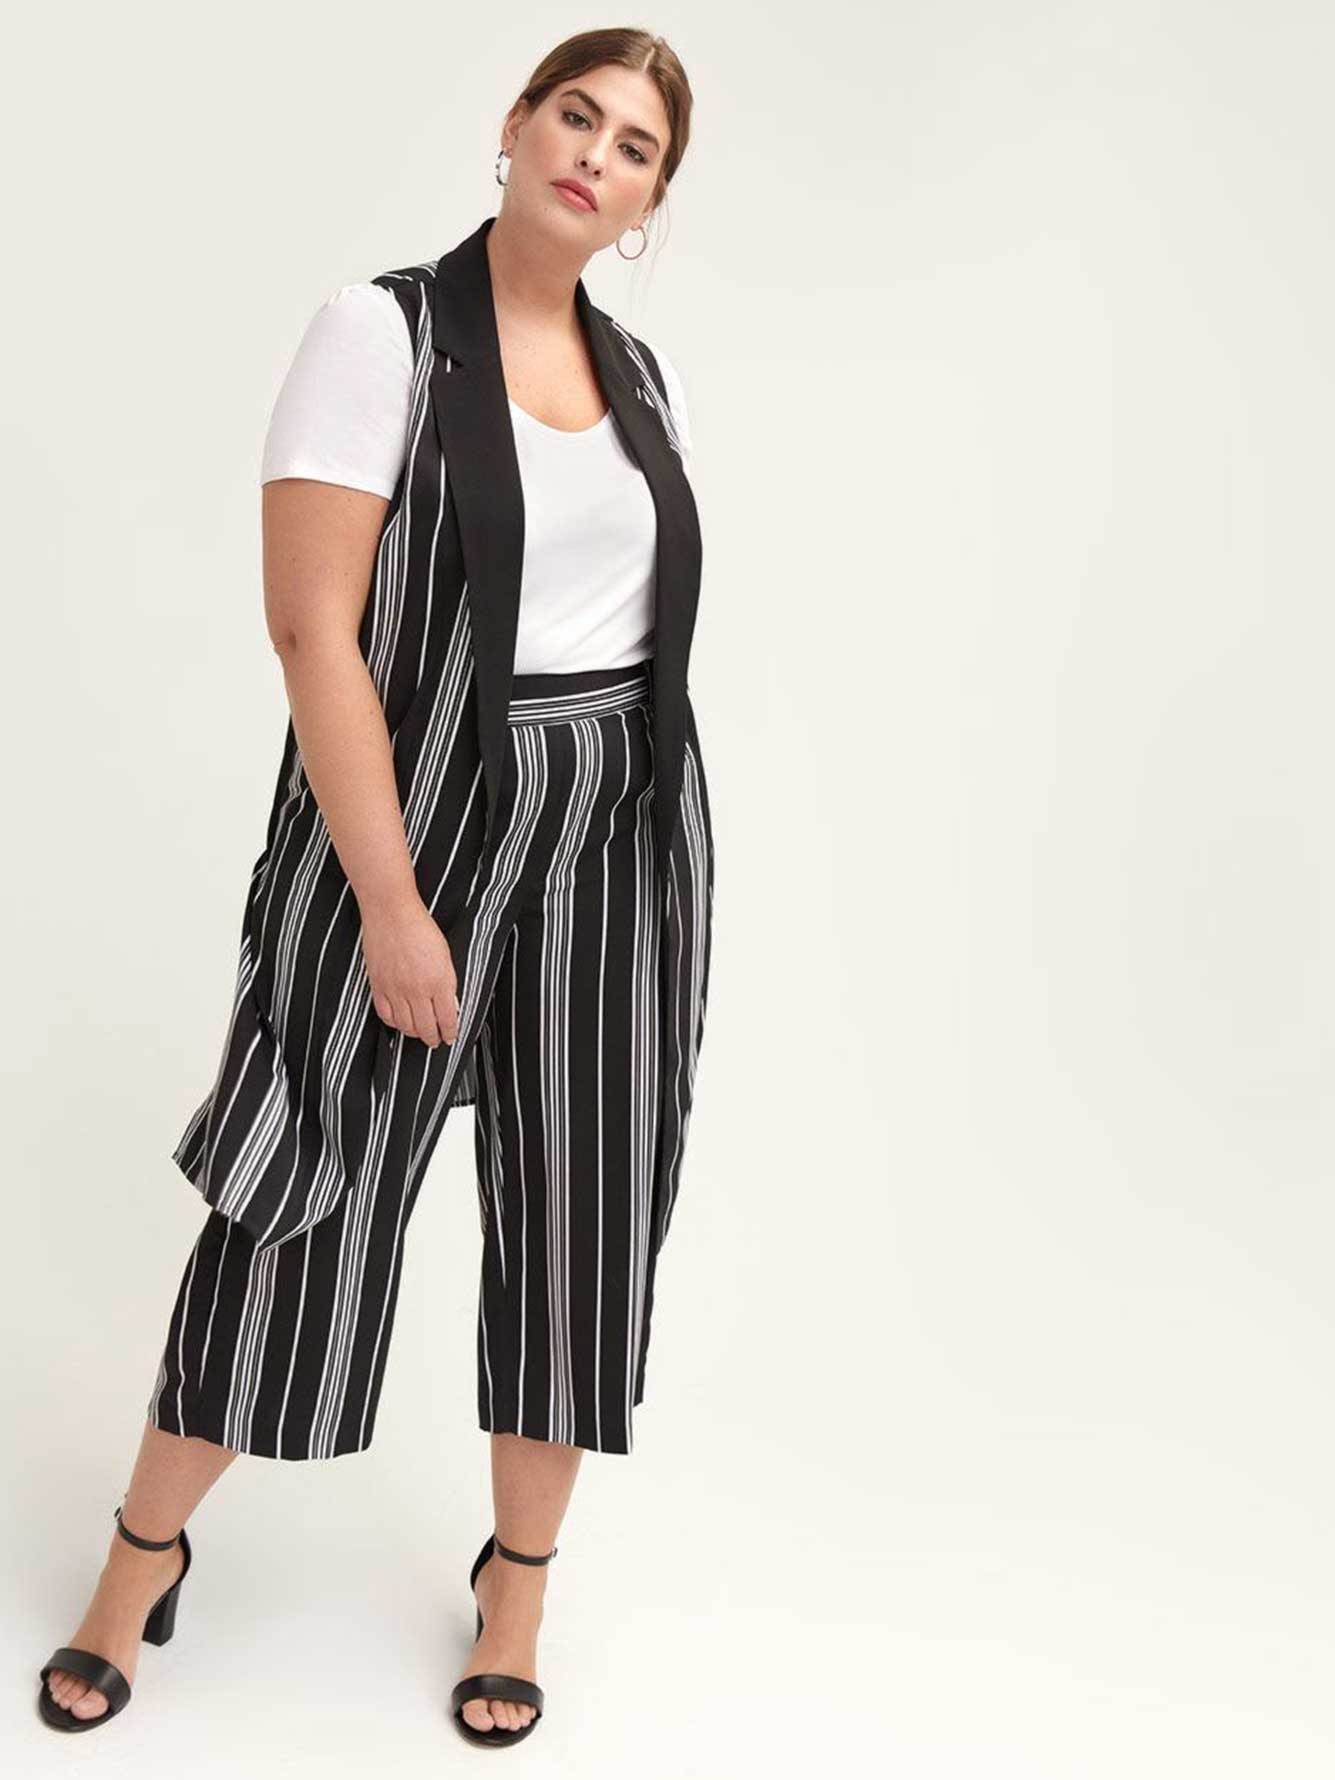 Long Sleeveless Vest with Stripes